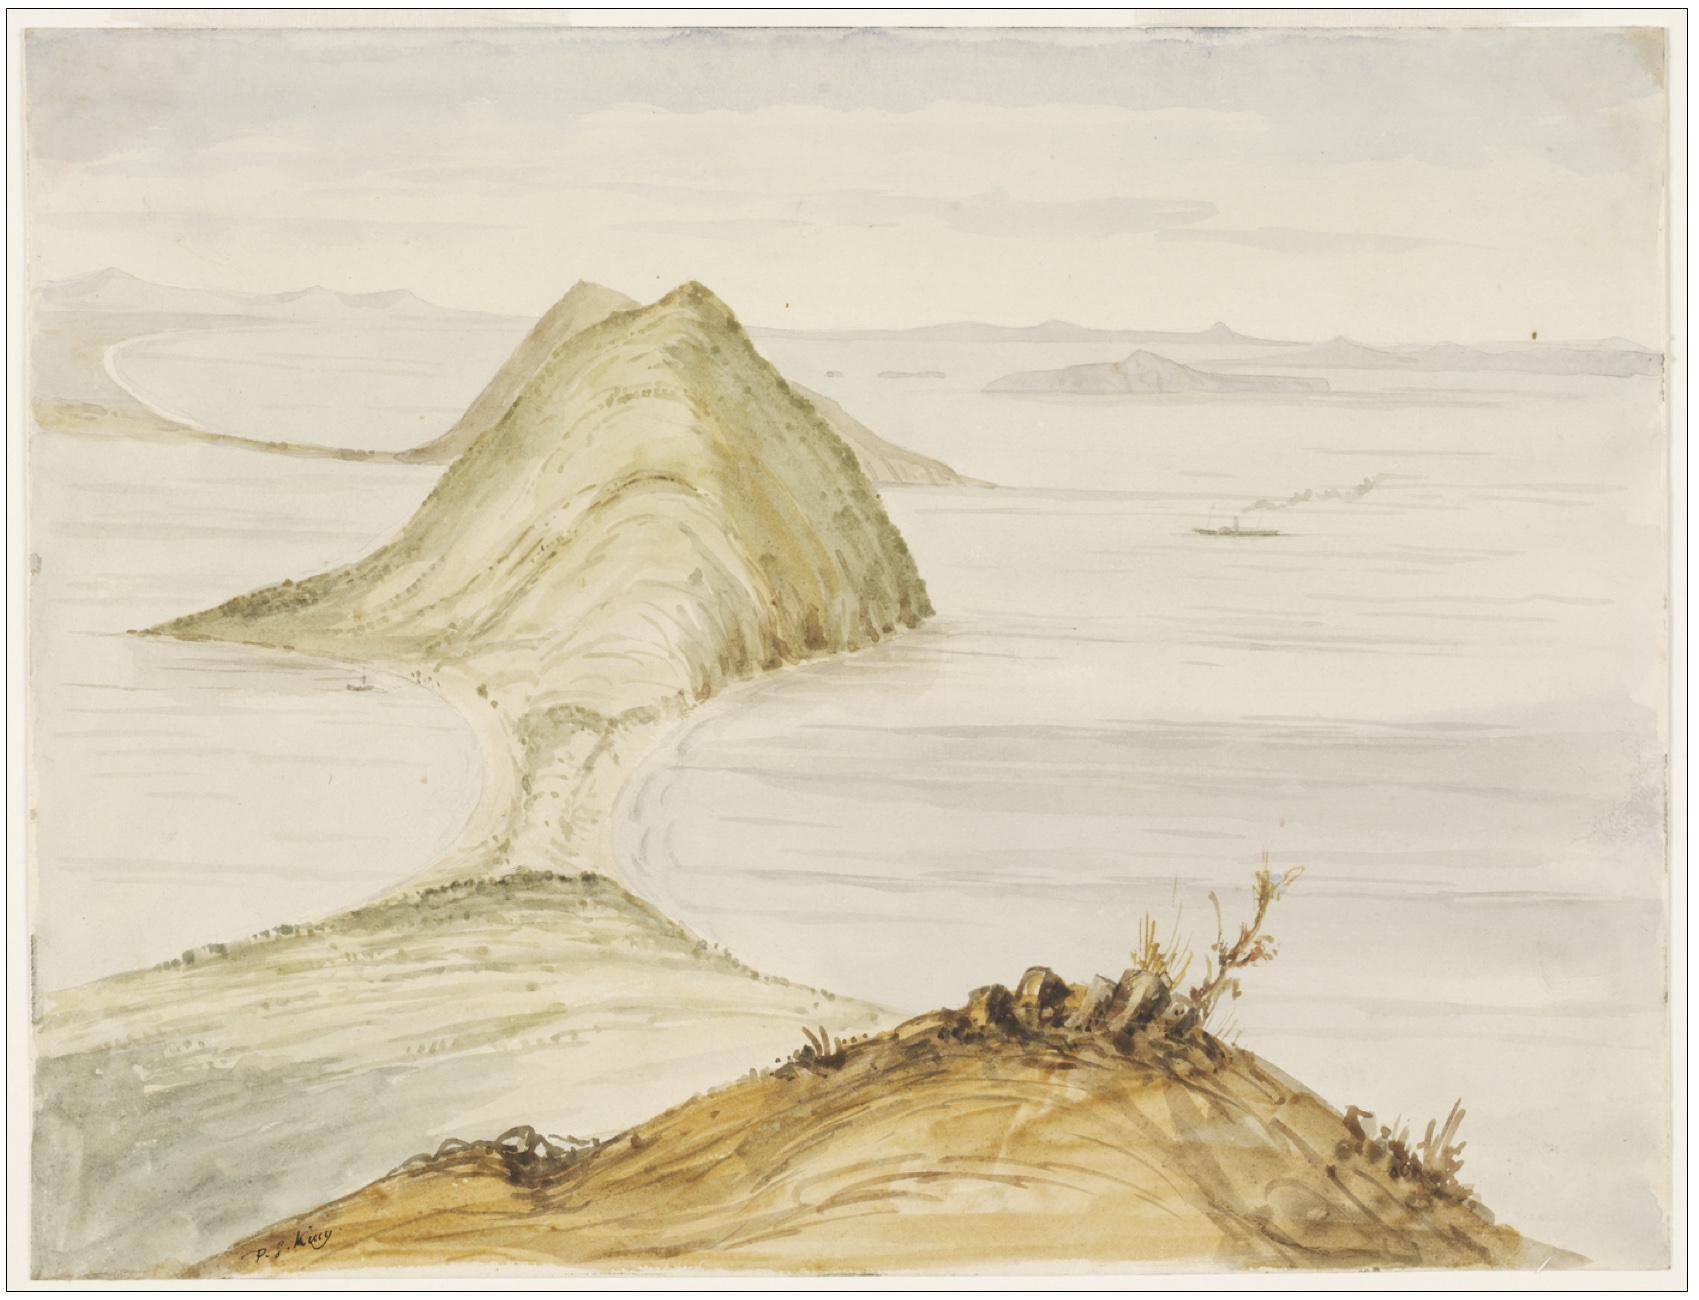 19. Entrance to Port Stephens. Watercolour. (Courtesy of State Library of NSW)